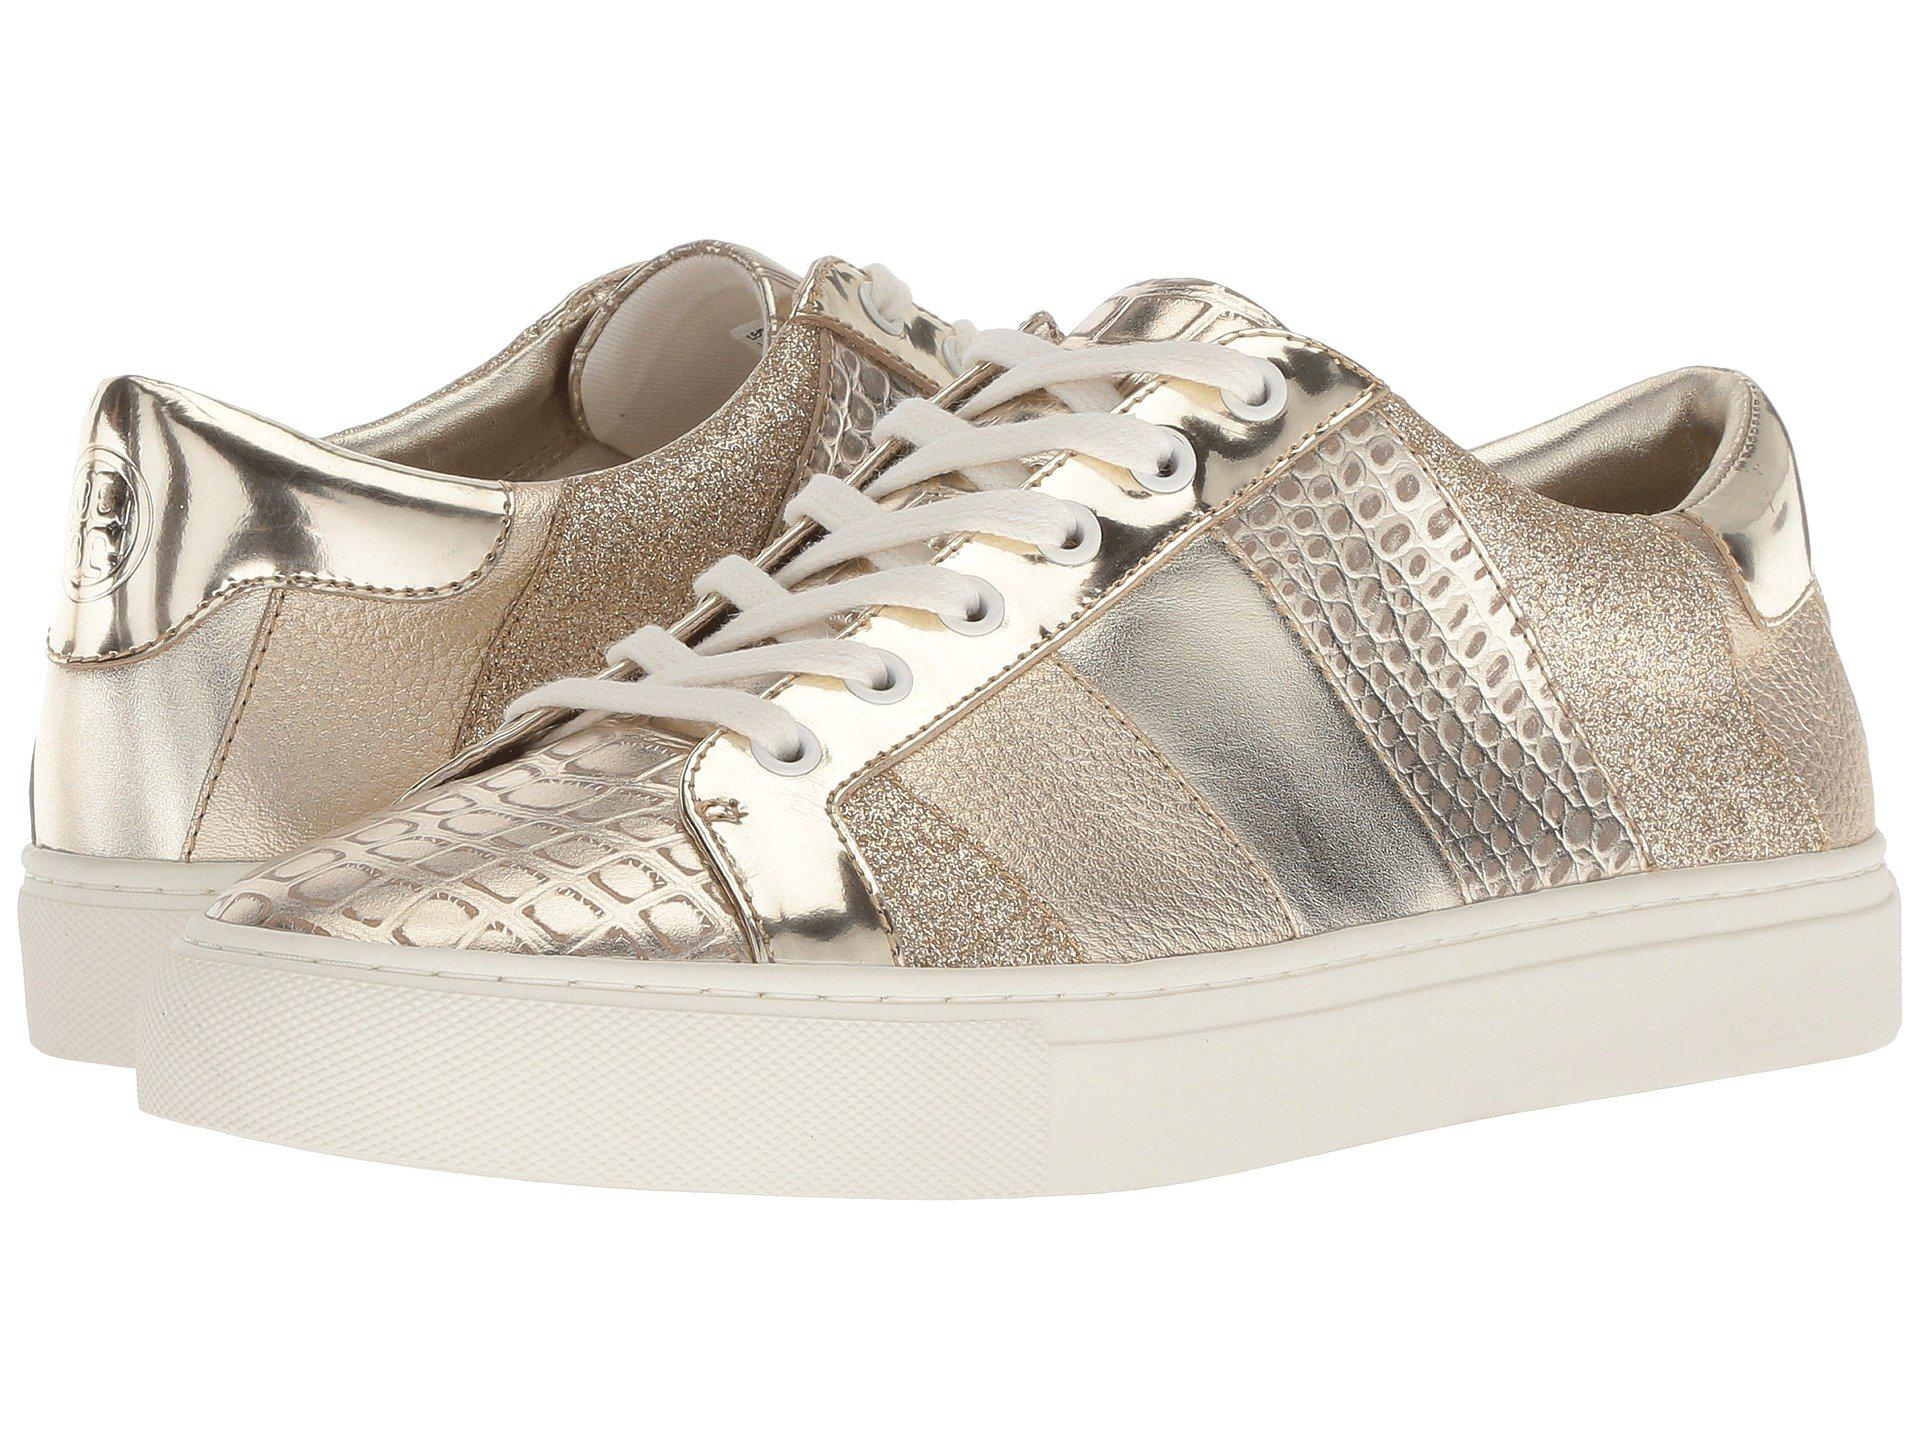 1e0abbaaa5fe Lyst - Tory Burch Ames Sneaker in Metallic